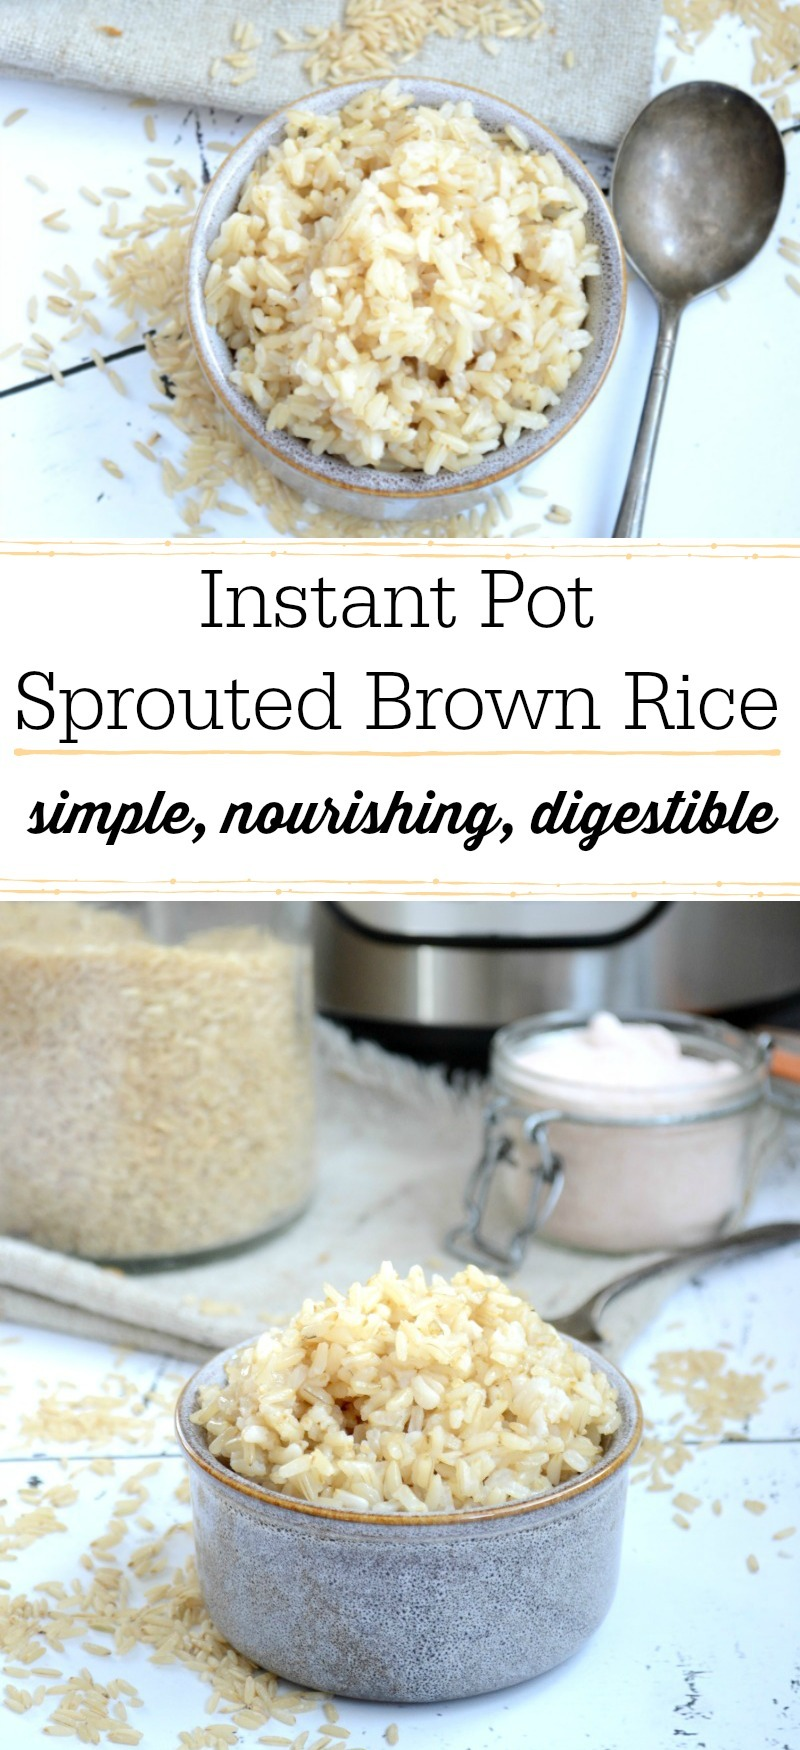 grey bowl of instant pot sprouted brown rice with text overlay